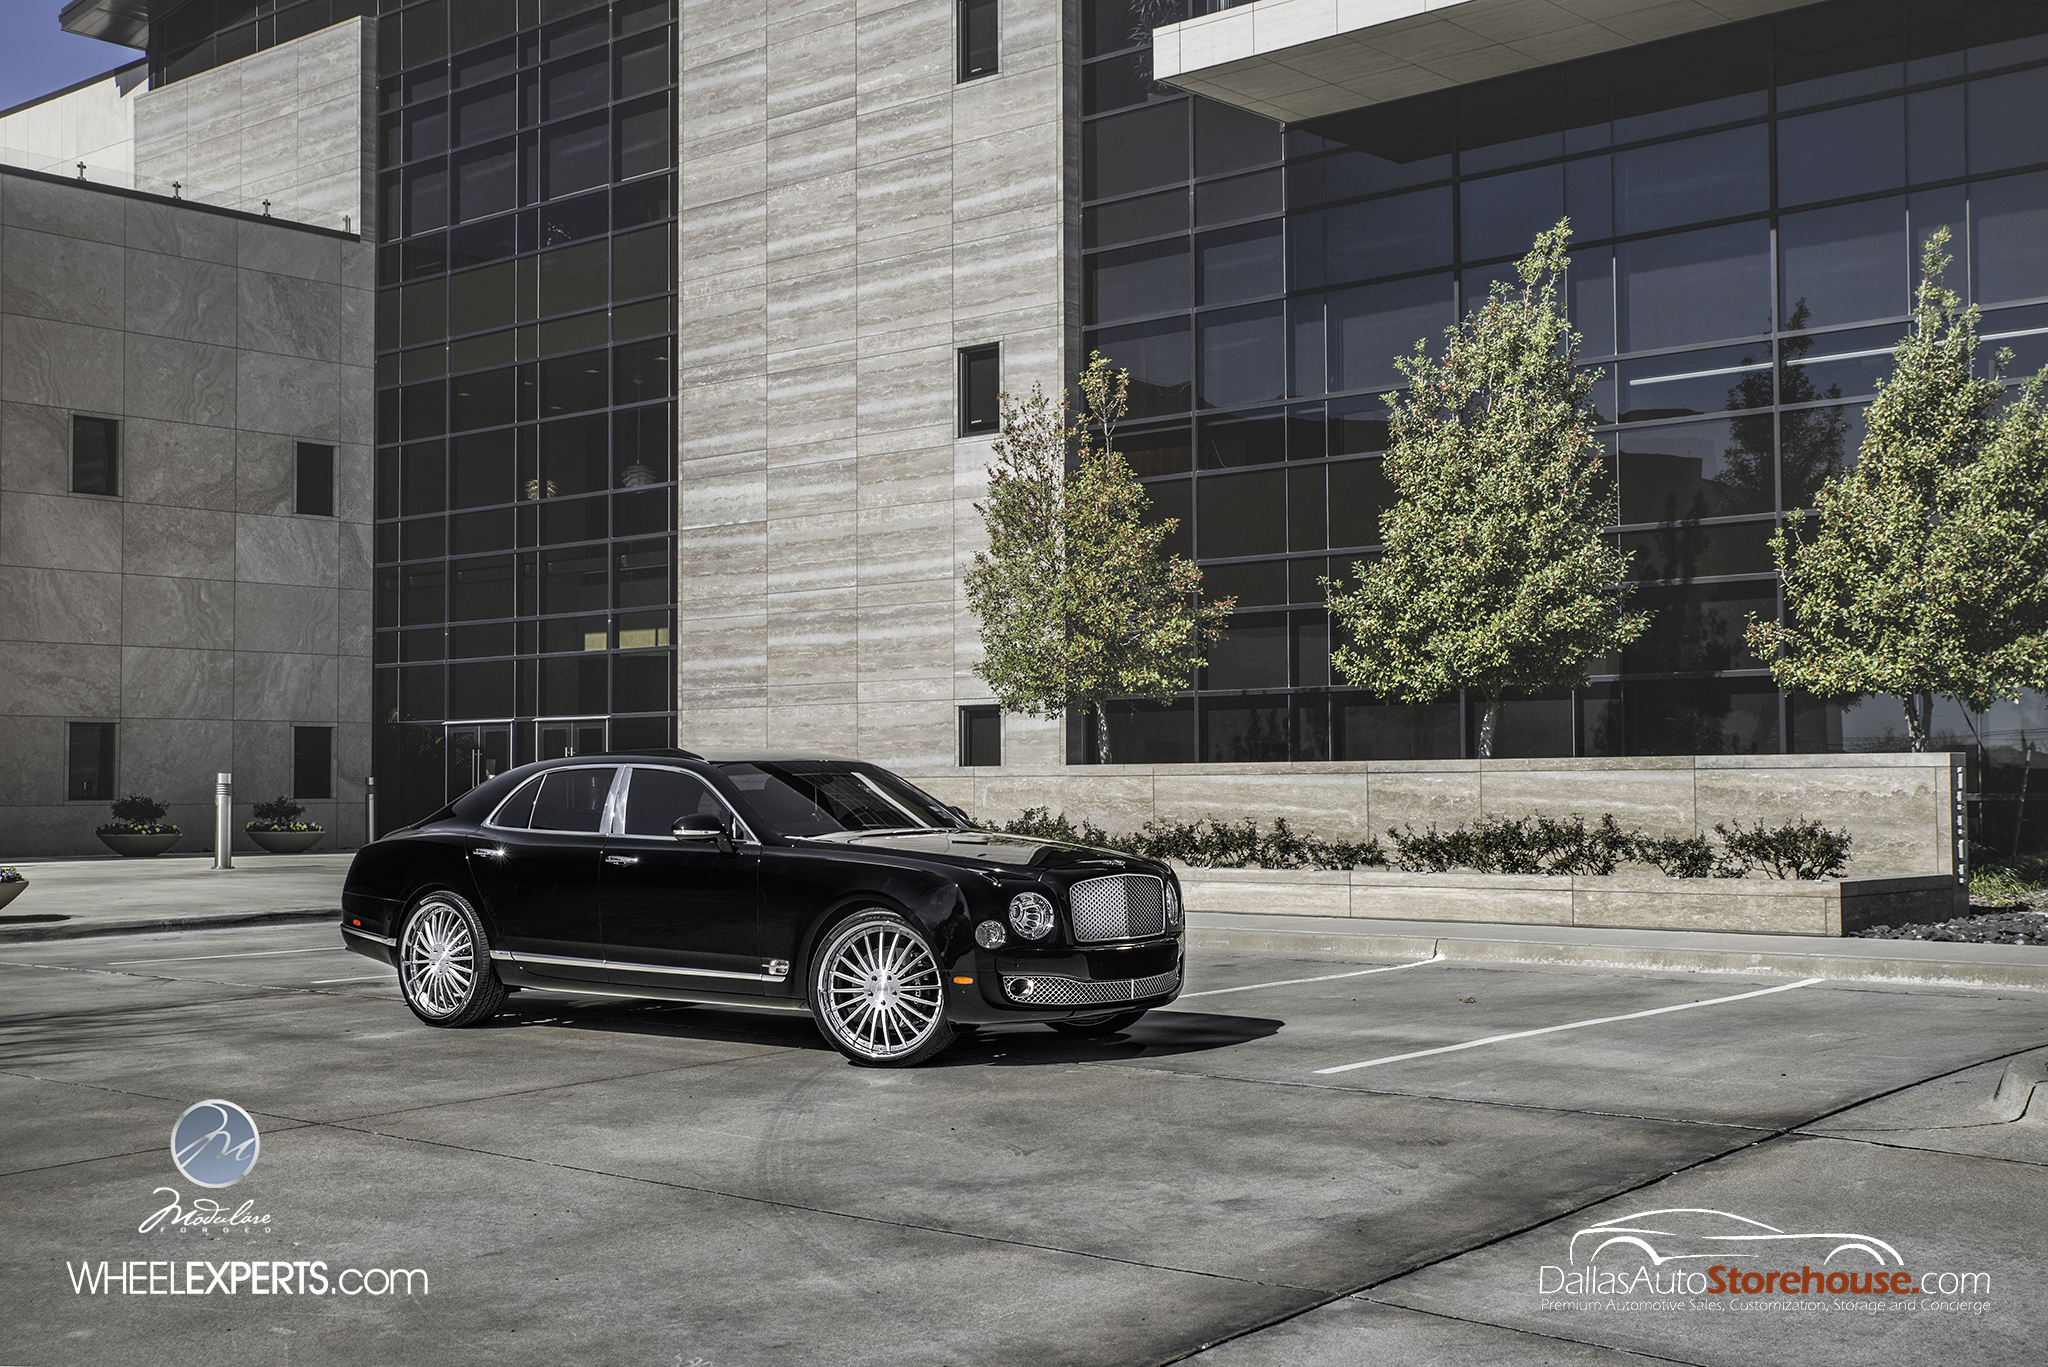 photo 2 Bentley Mulsanne Wheels Modulare M20 24x10.0, ET , tire size 285/30 R24. x ET